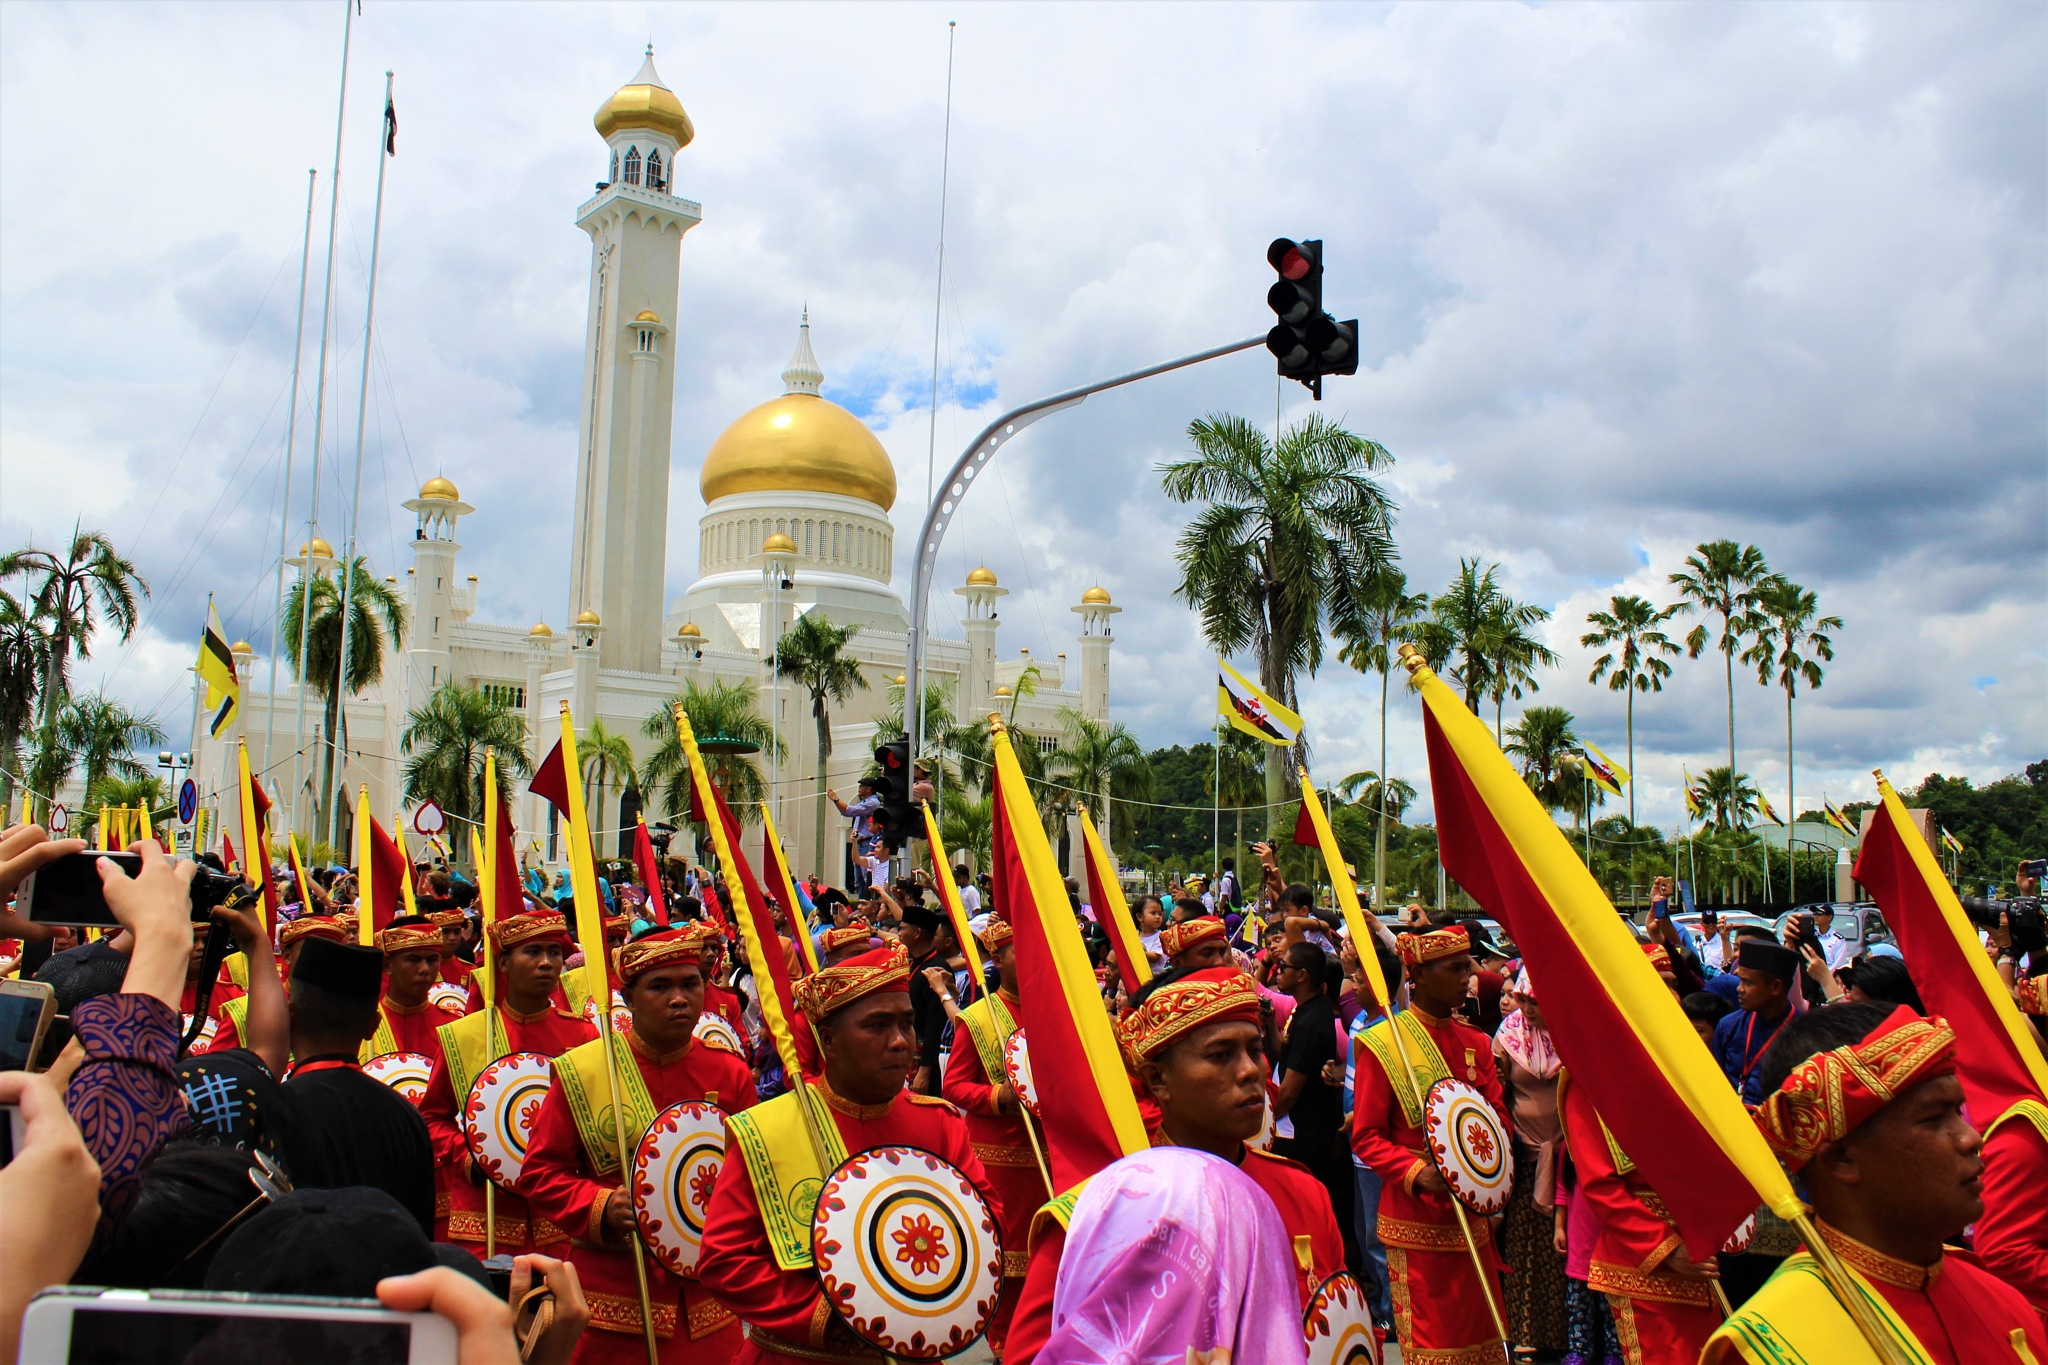 His Majesty's Golden Jubilee by Syiqah A.